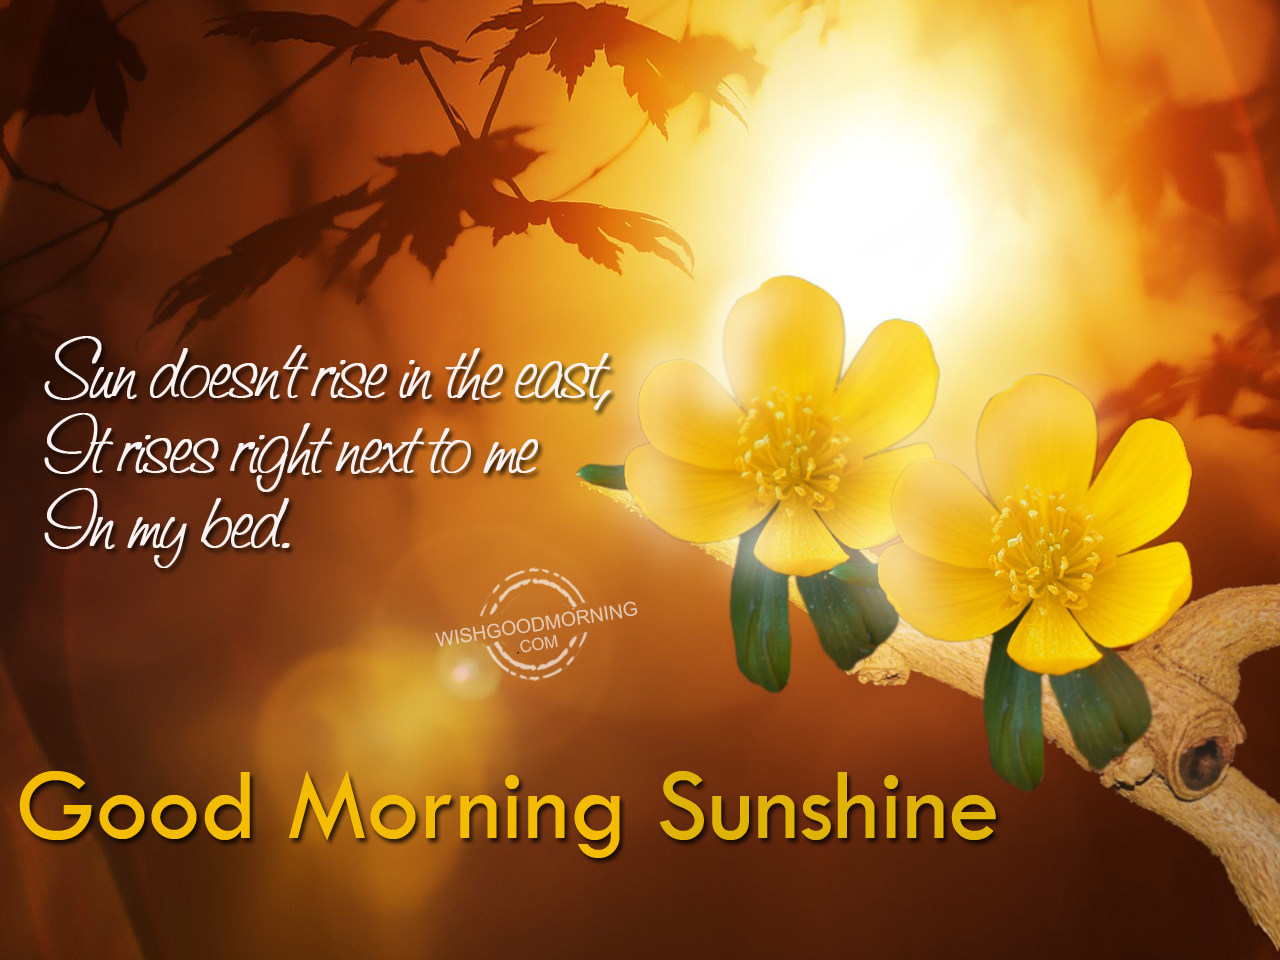 Good Morning Sunshine Wishes : Good morning wishes for wife pictures